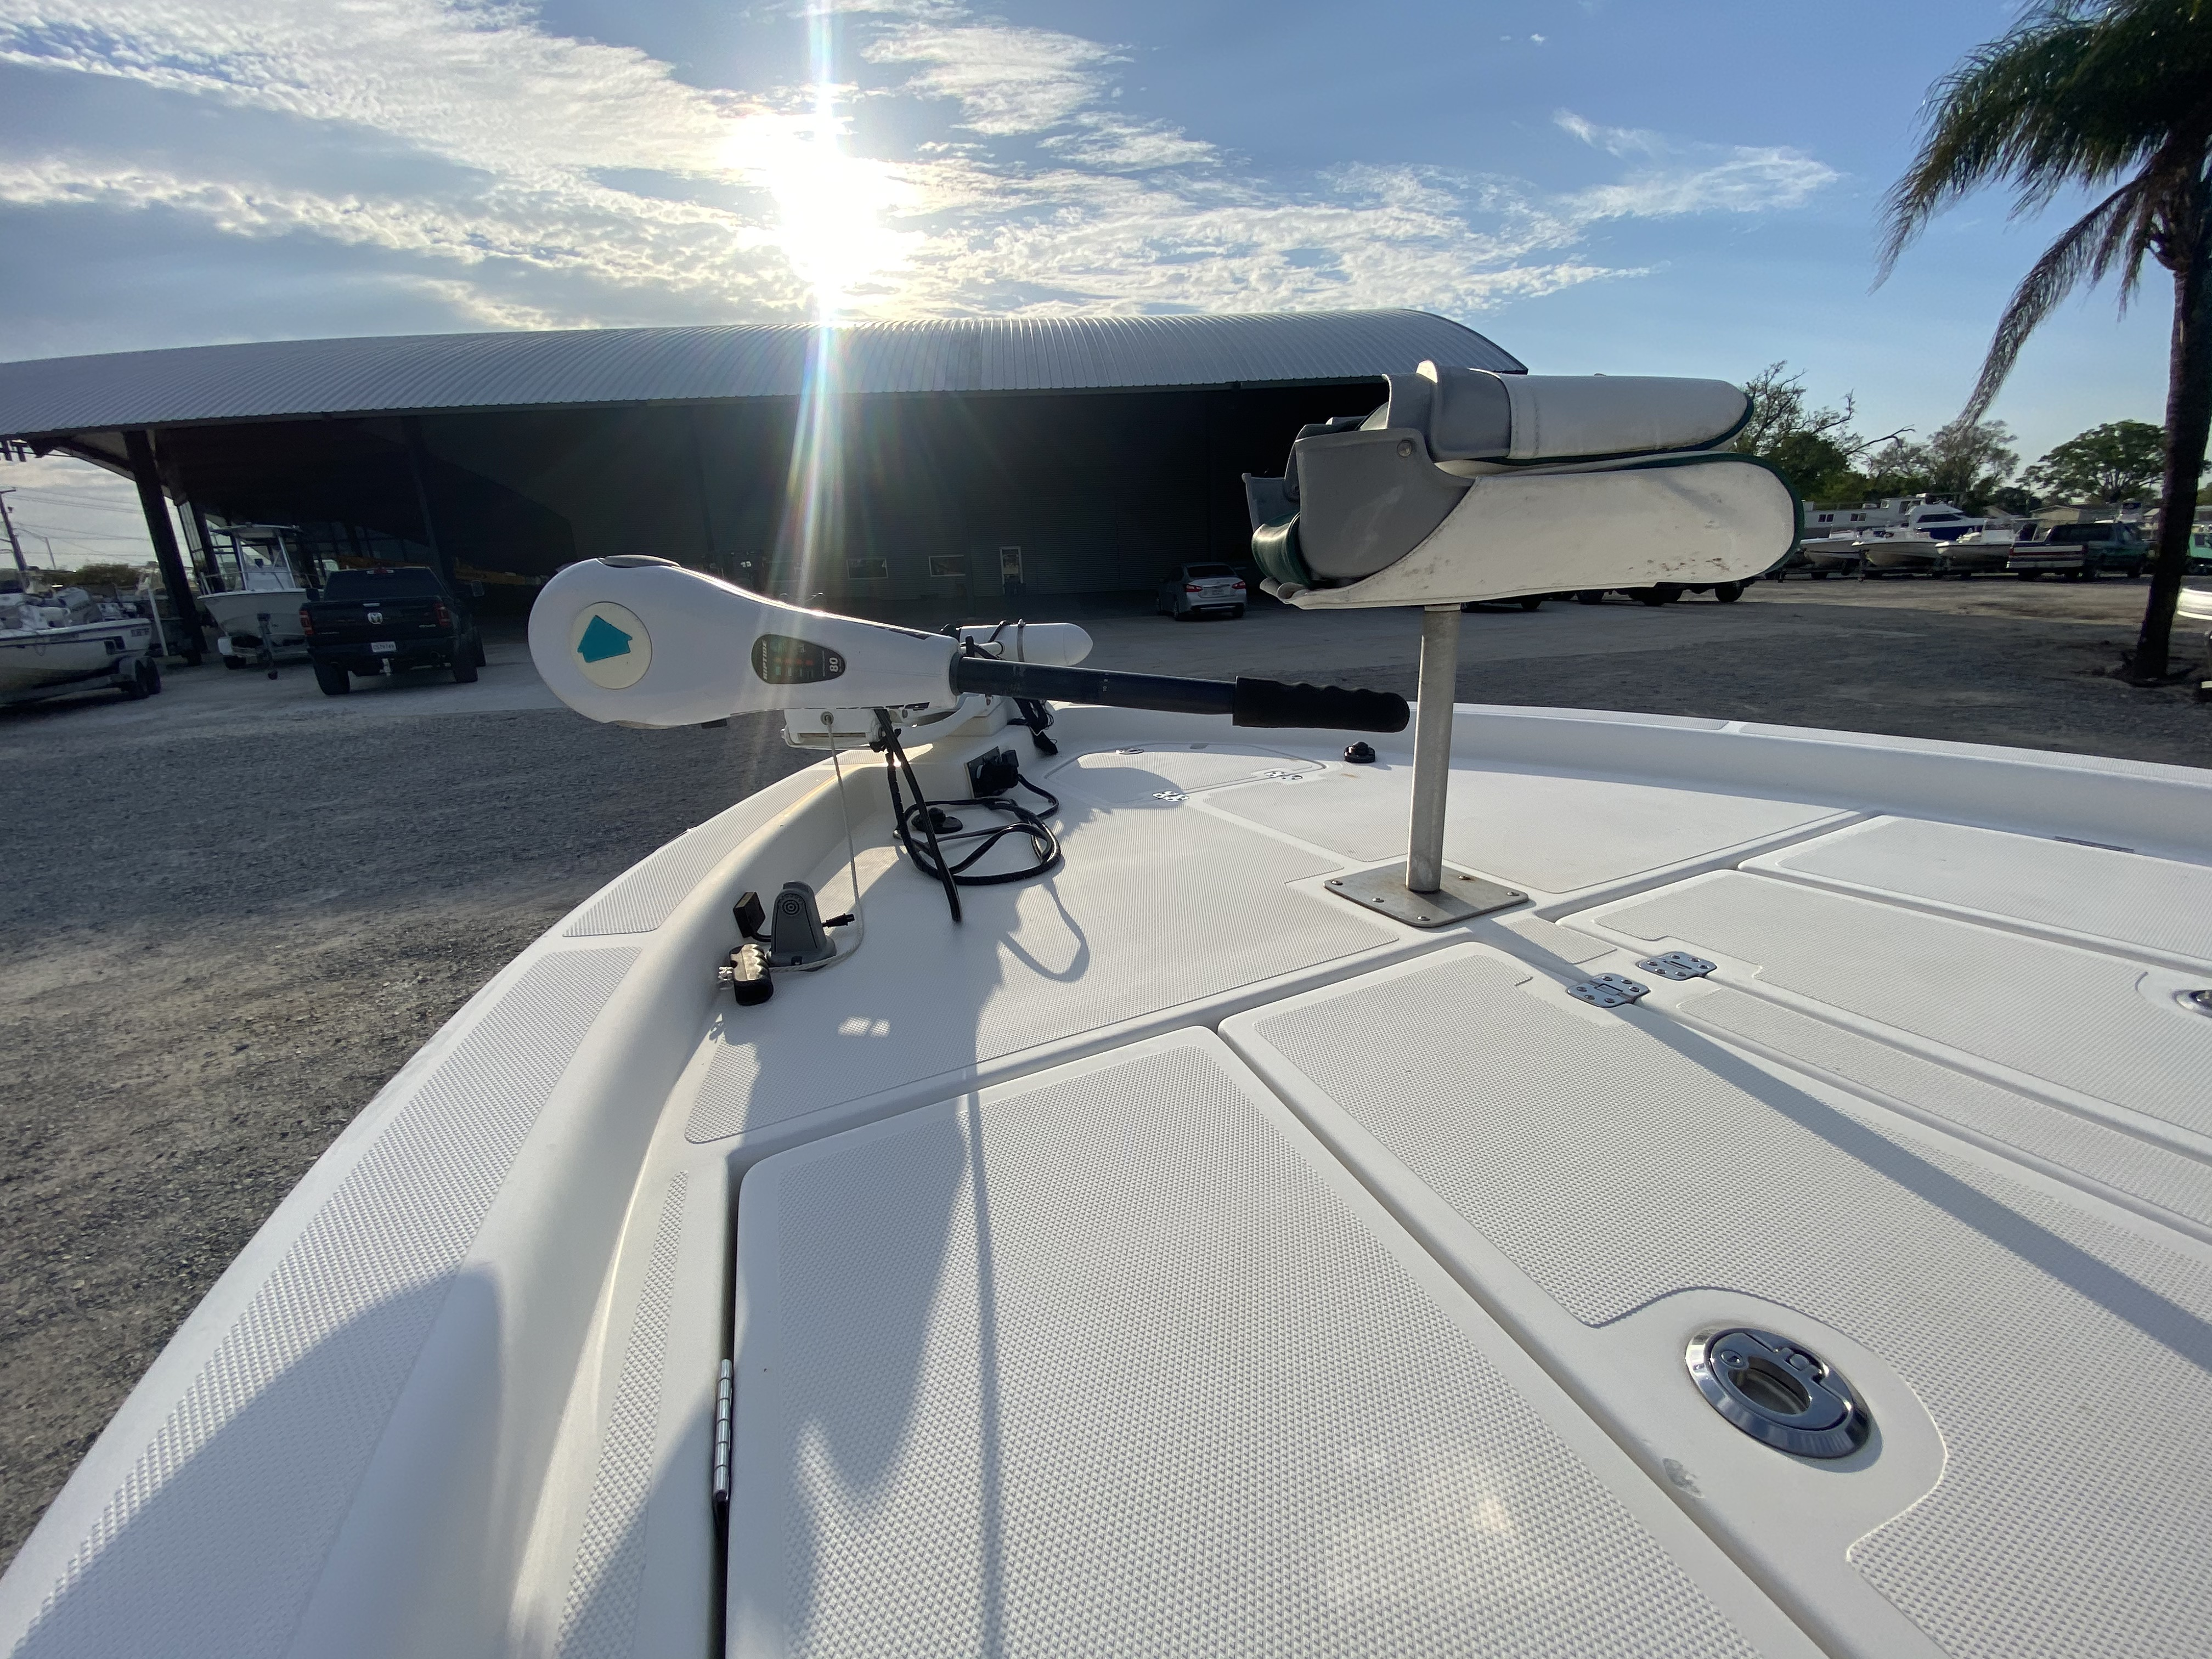 2005 ProGator boat for sale, model of the boat is 2110 CC & Image # 18 of 18